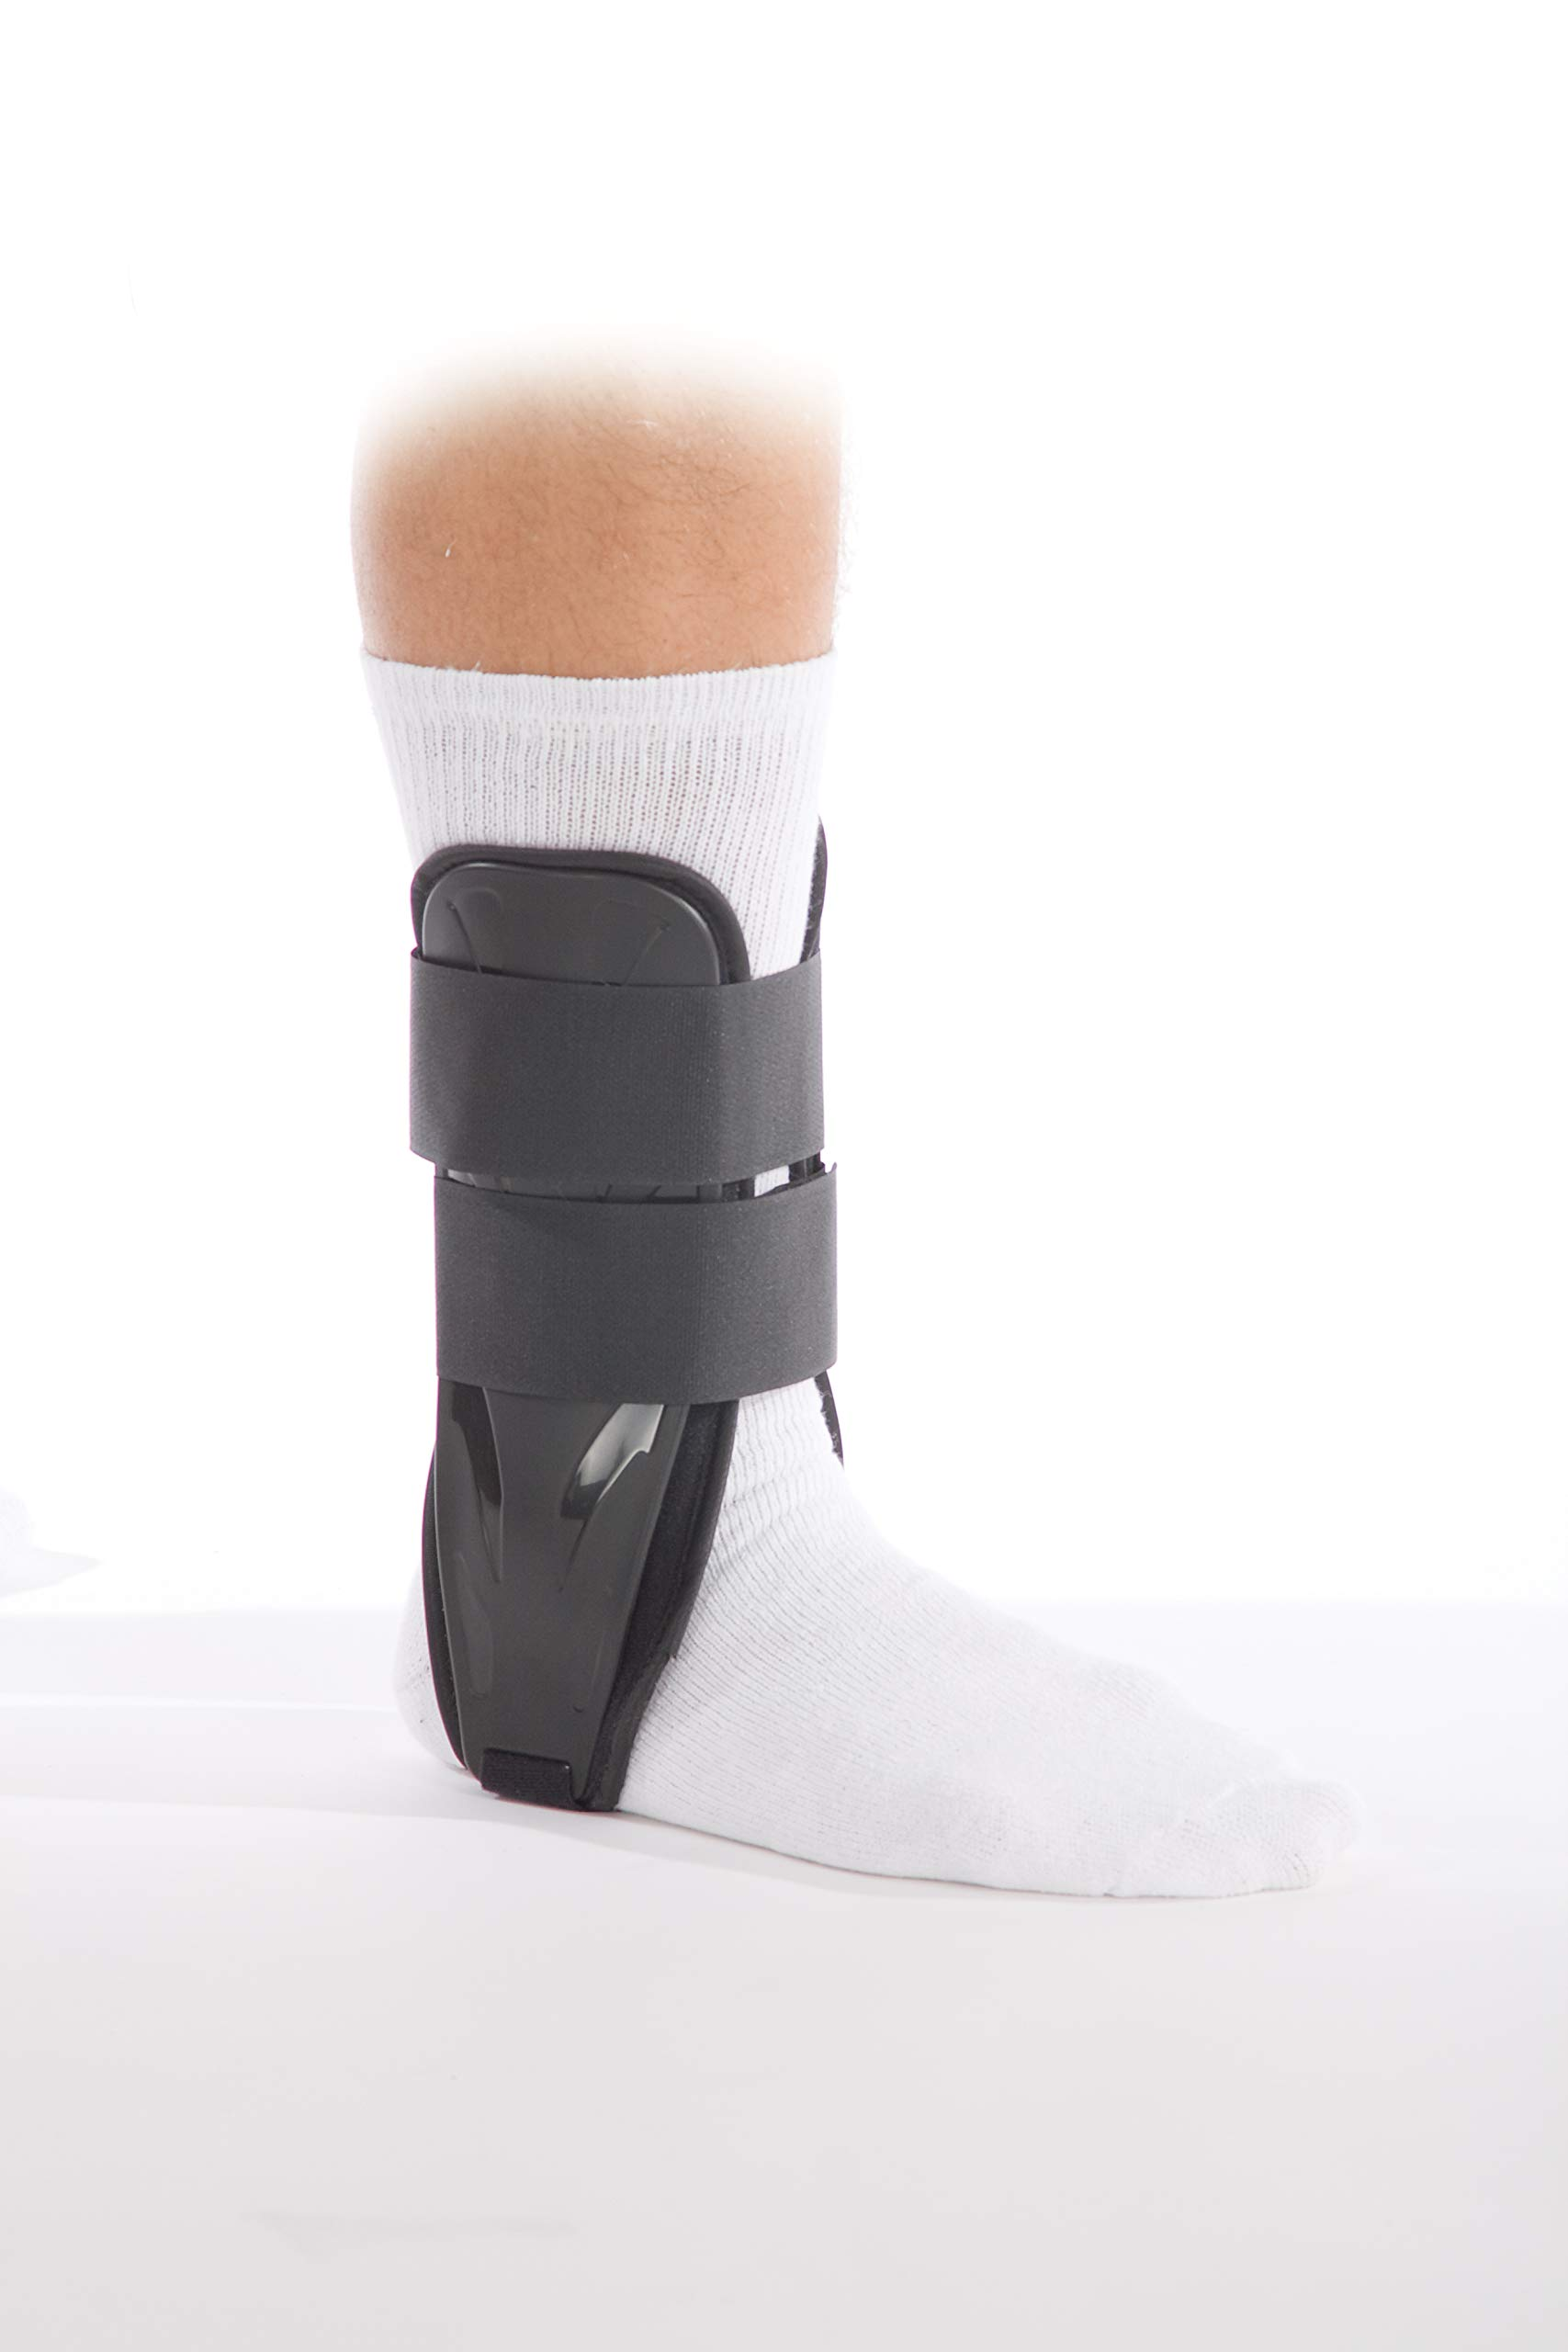 FitPro Adjustable Stirrup Ankle Splint Brace, Regular, Amazon Exclusive Brand